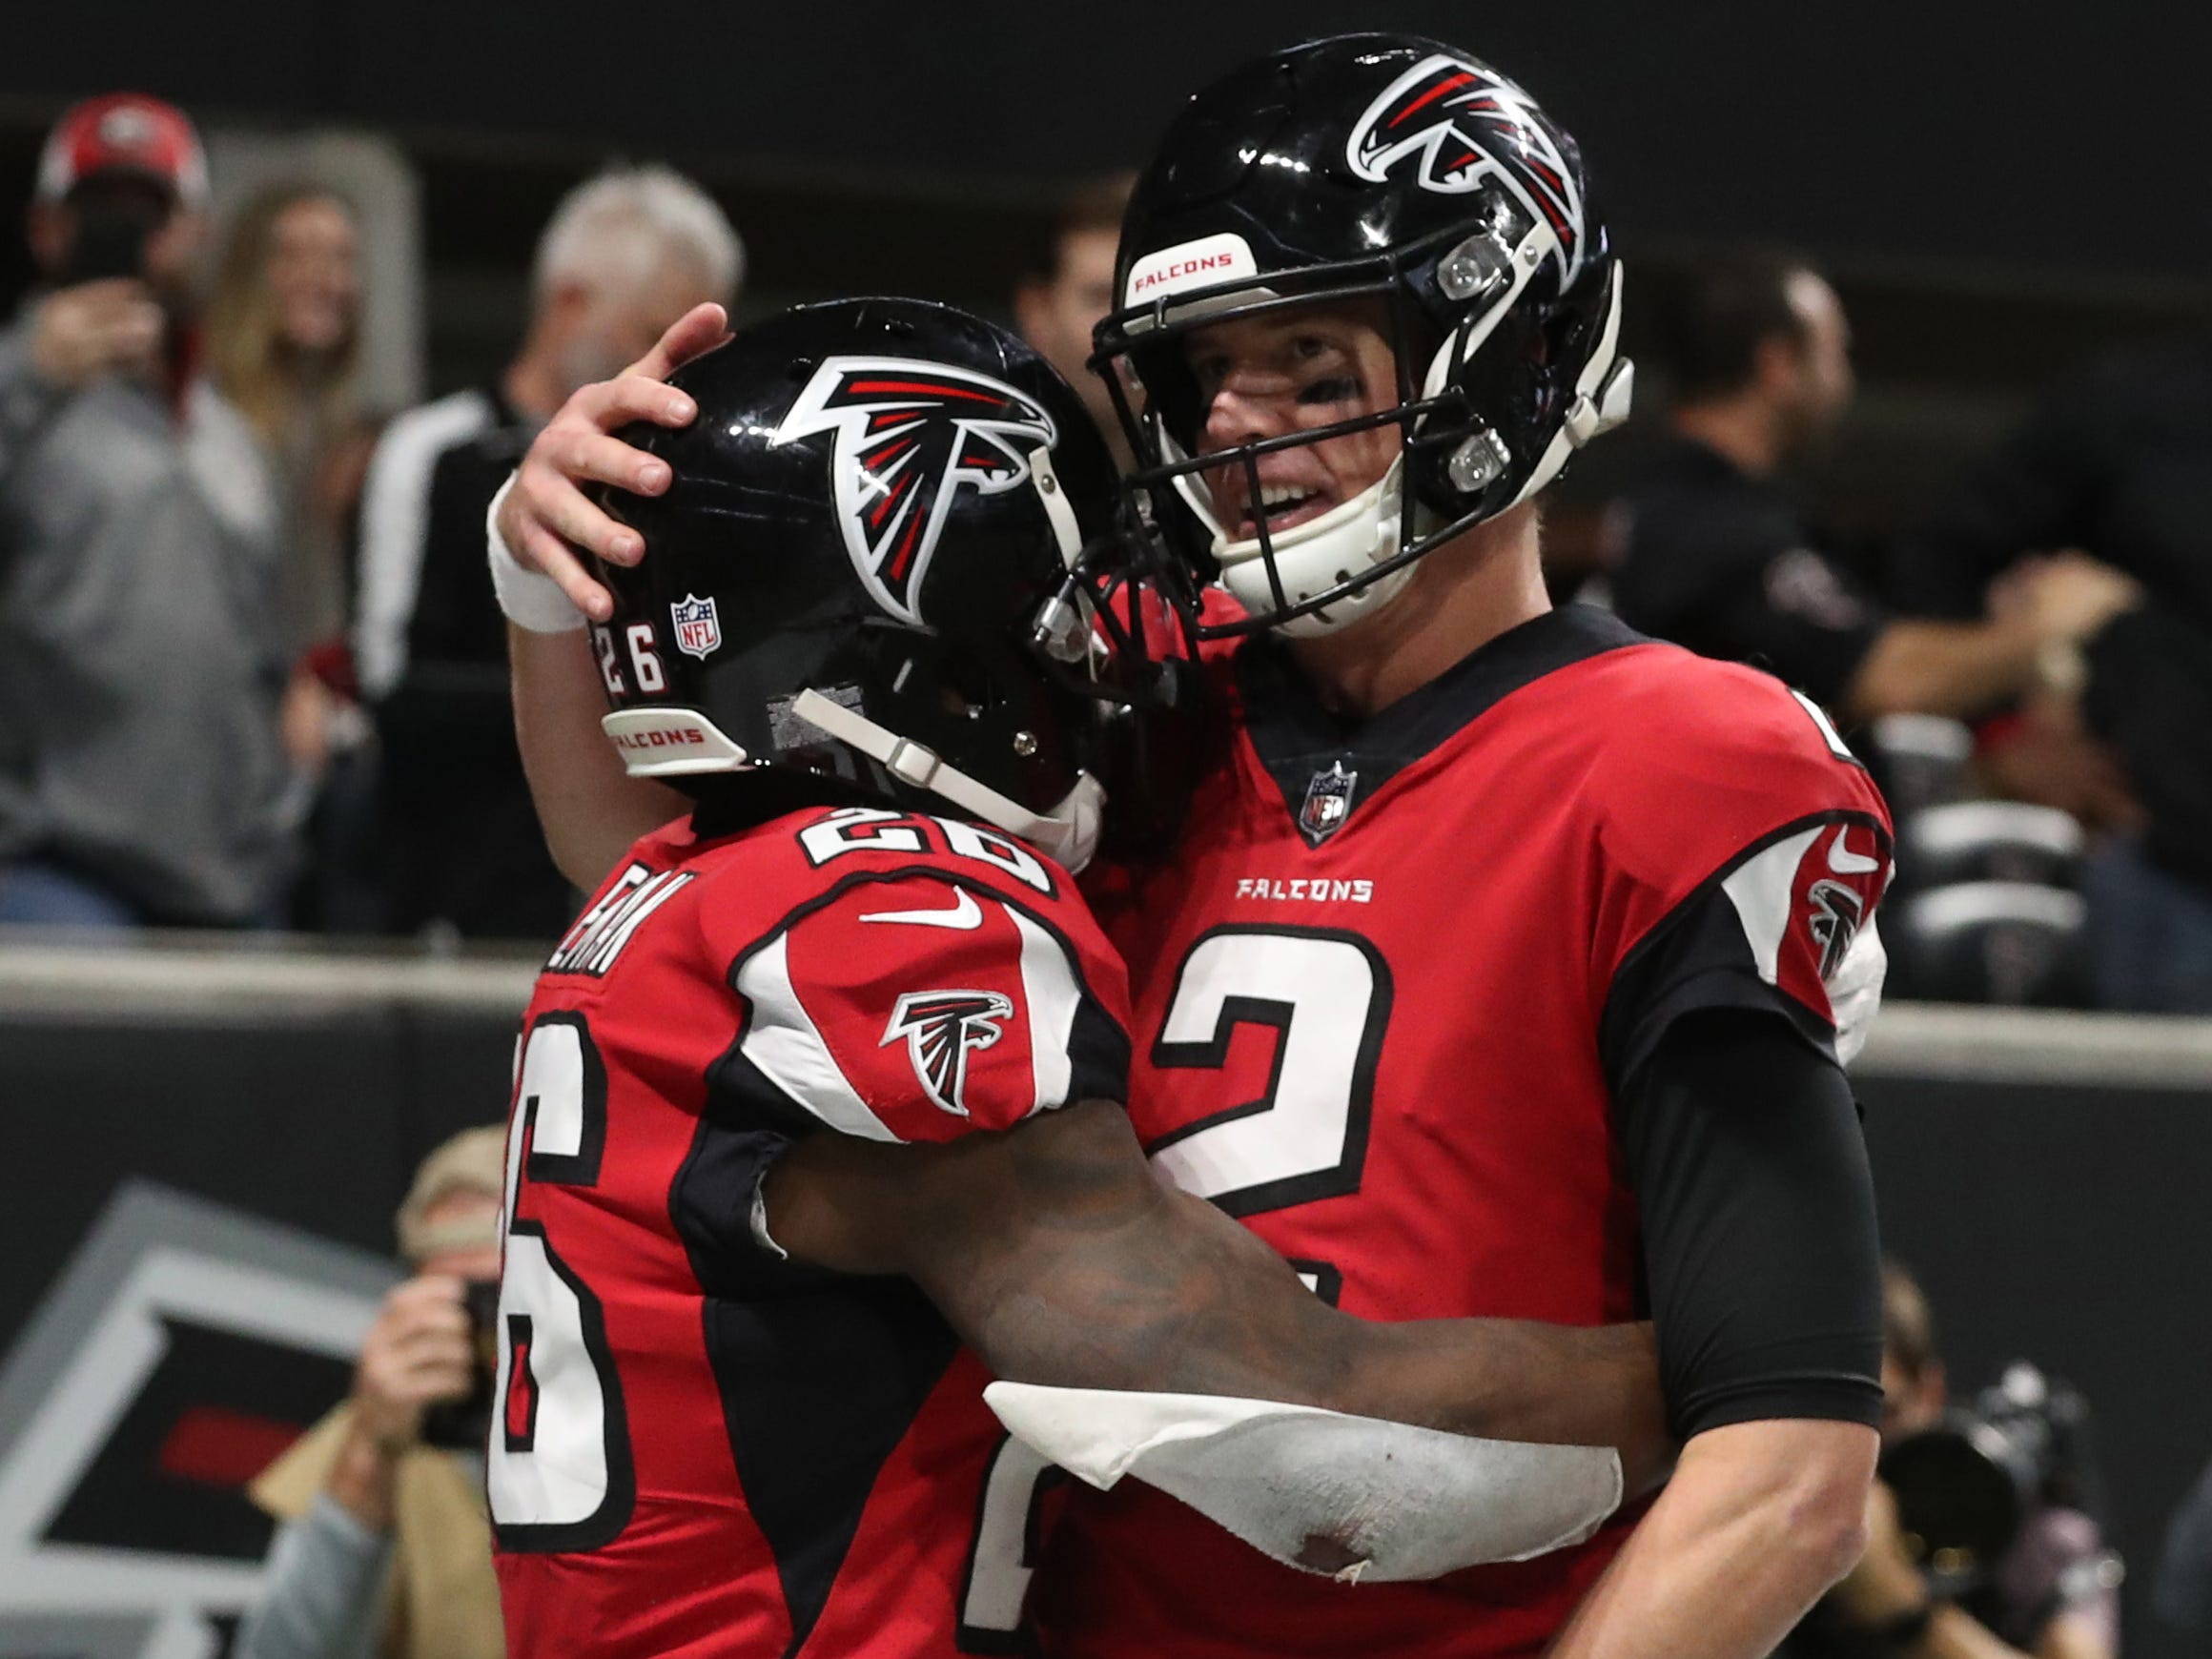 Dec 16, 2018; Atlanta, GA, USA; Atlanta Falcons running back Tevin Coleman (26) celebrates with quarterback Matt Ryan (2) after scoring a touchdown in the third quarter against the Arizona Cardinals at Mercedes-Benz Stadium.